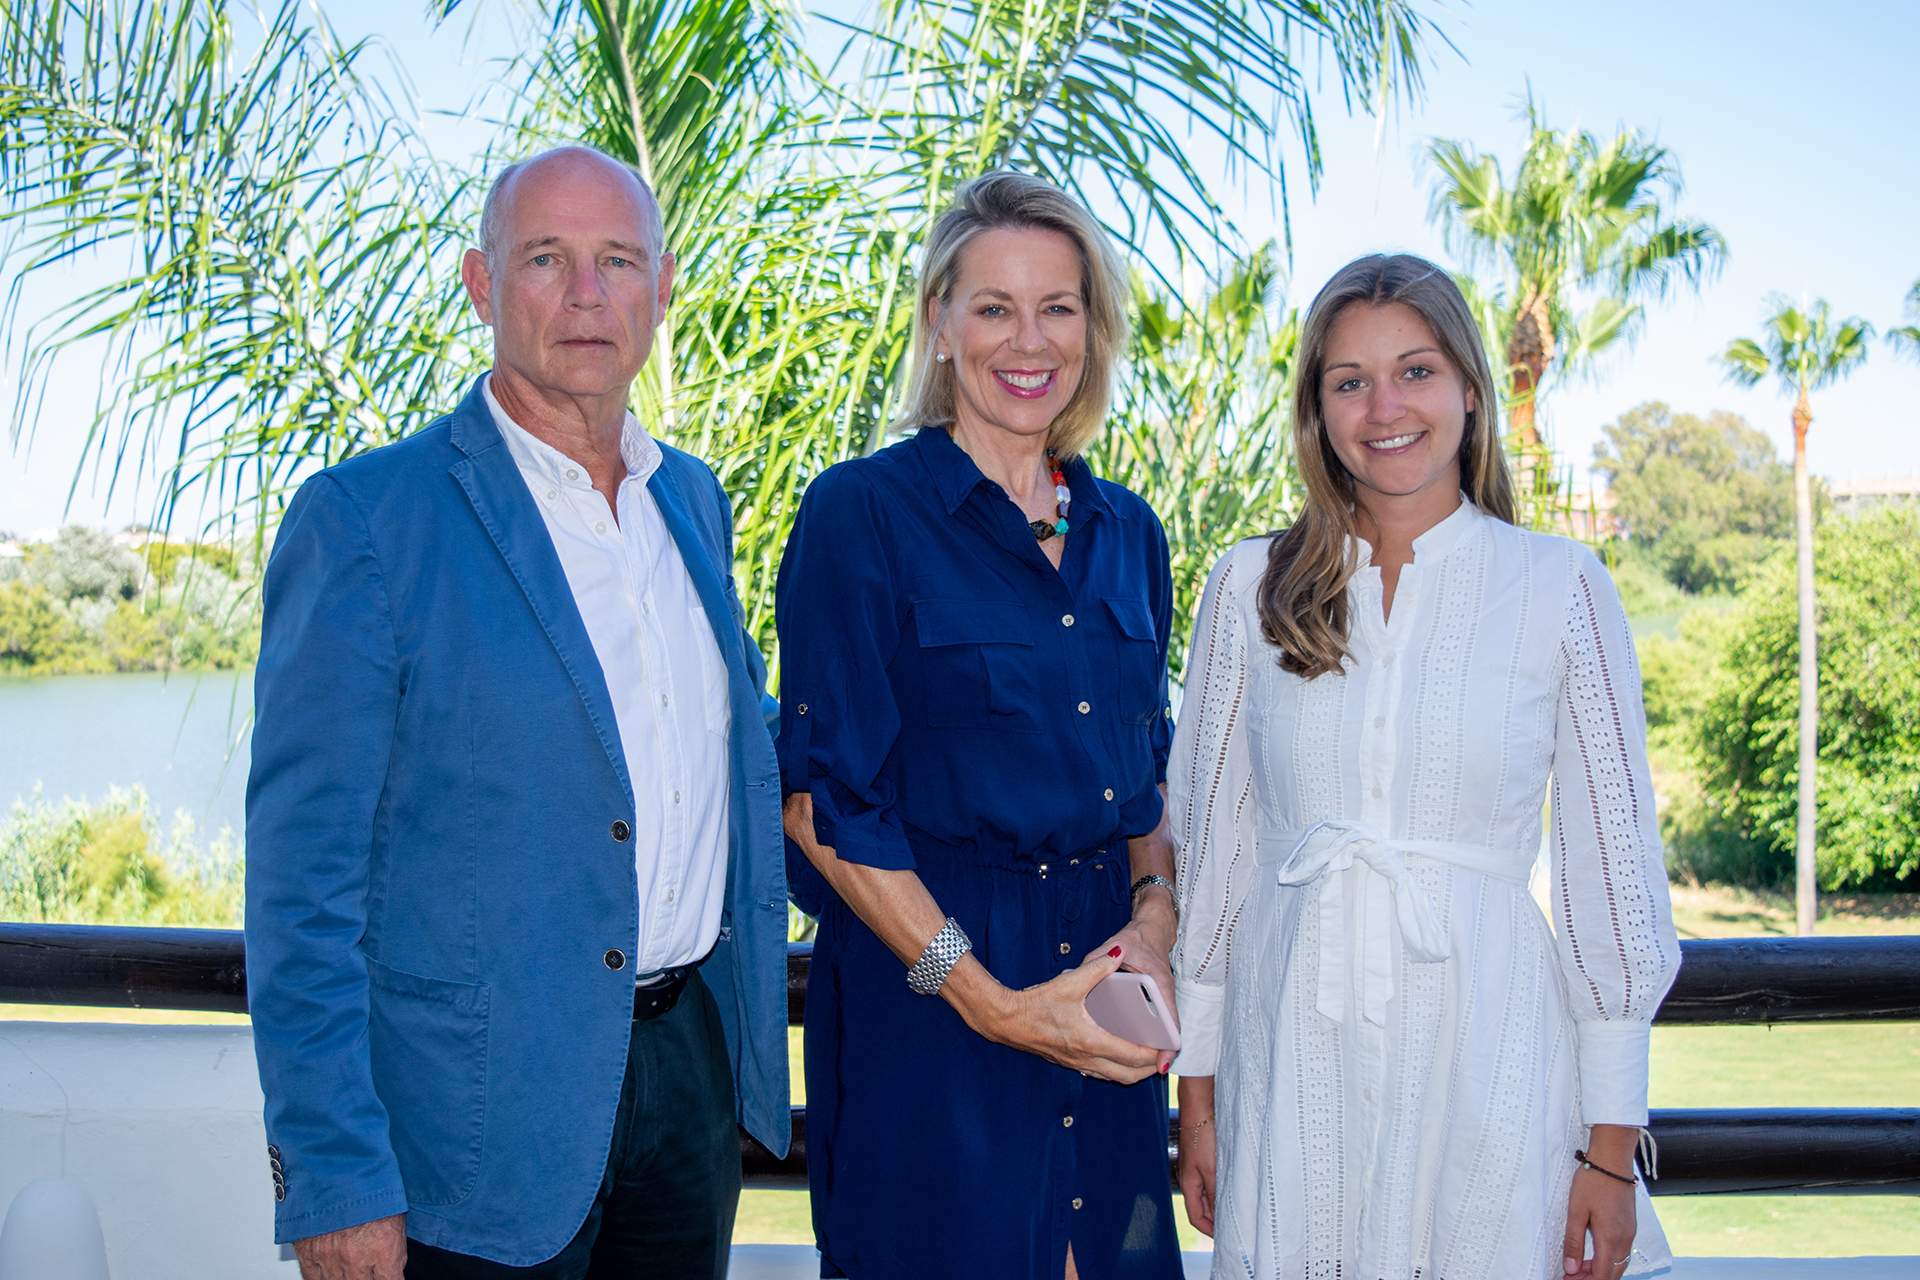 charles-gubbins-stephanie-noll-christina-stoldt-noll-sotogrande-rea-estate-jun-2020